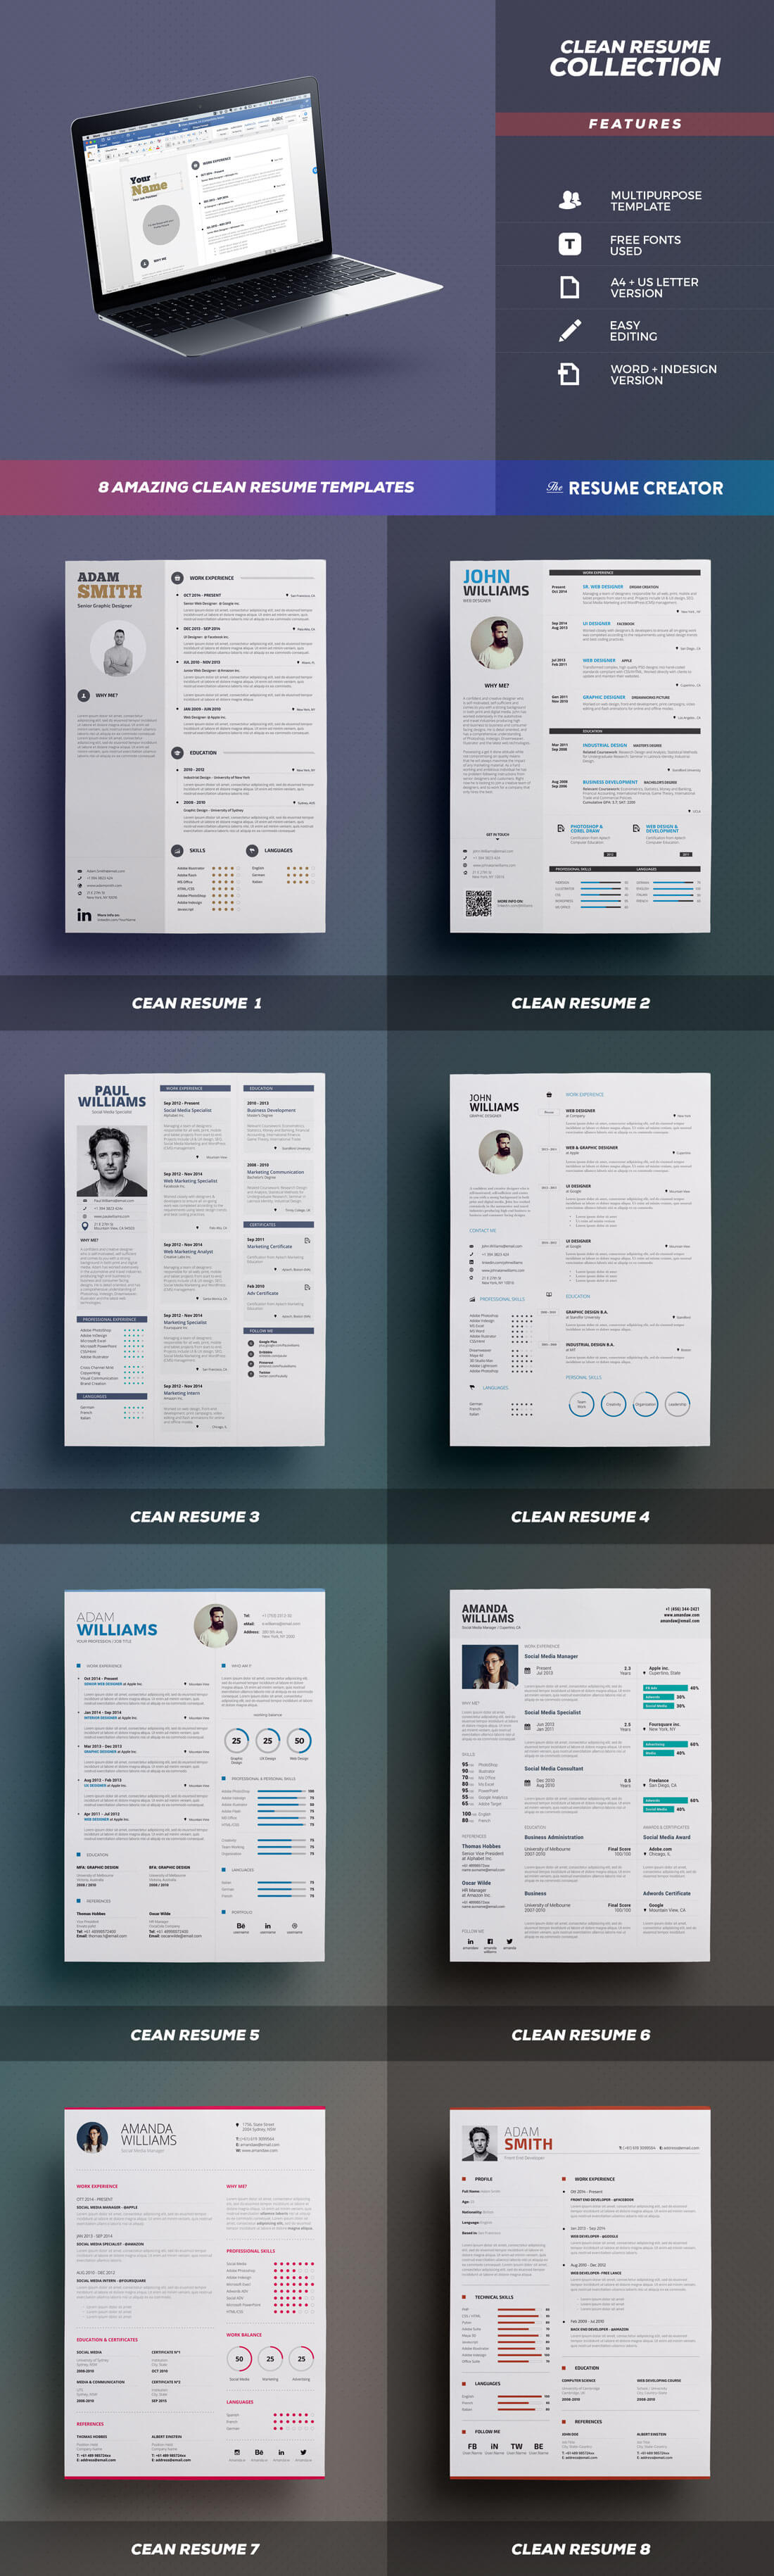 Last Chance  PrintReady Creative Resume Templates From